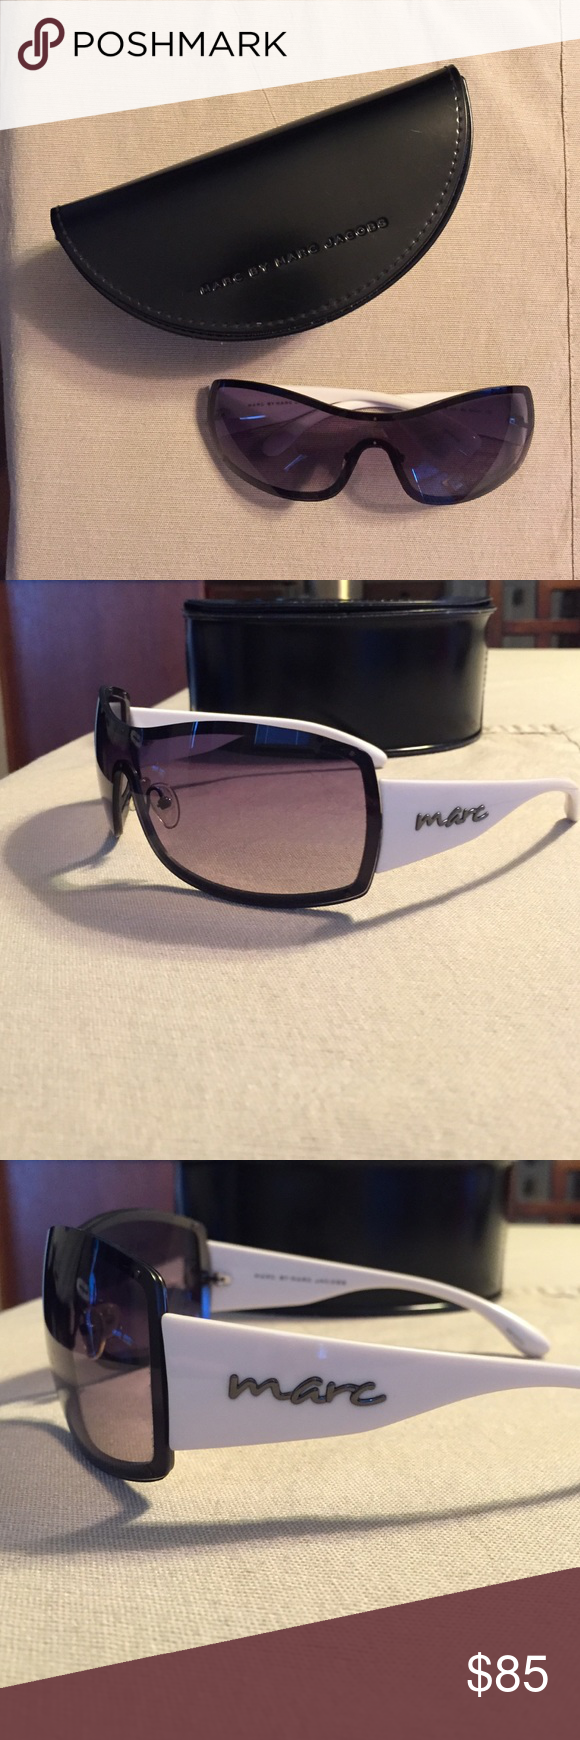 Marc by Marc Jacobs Sunglasses Good condition. Only minor scratches on the lenses, normal wear Marc by Marc Jacobs Accessories Sunglasses